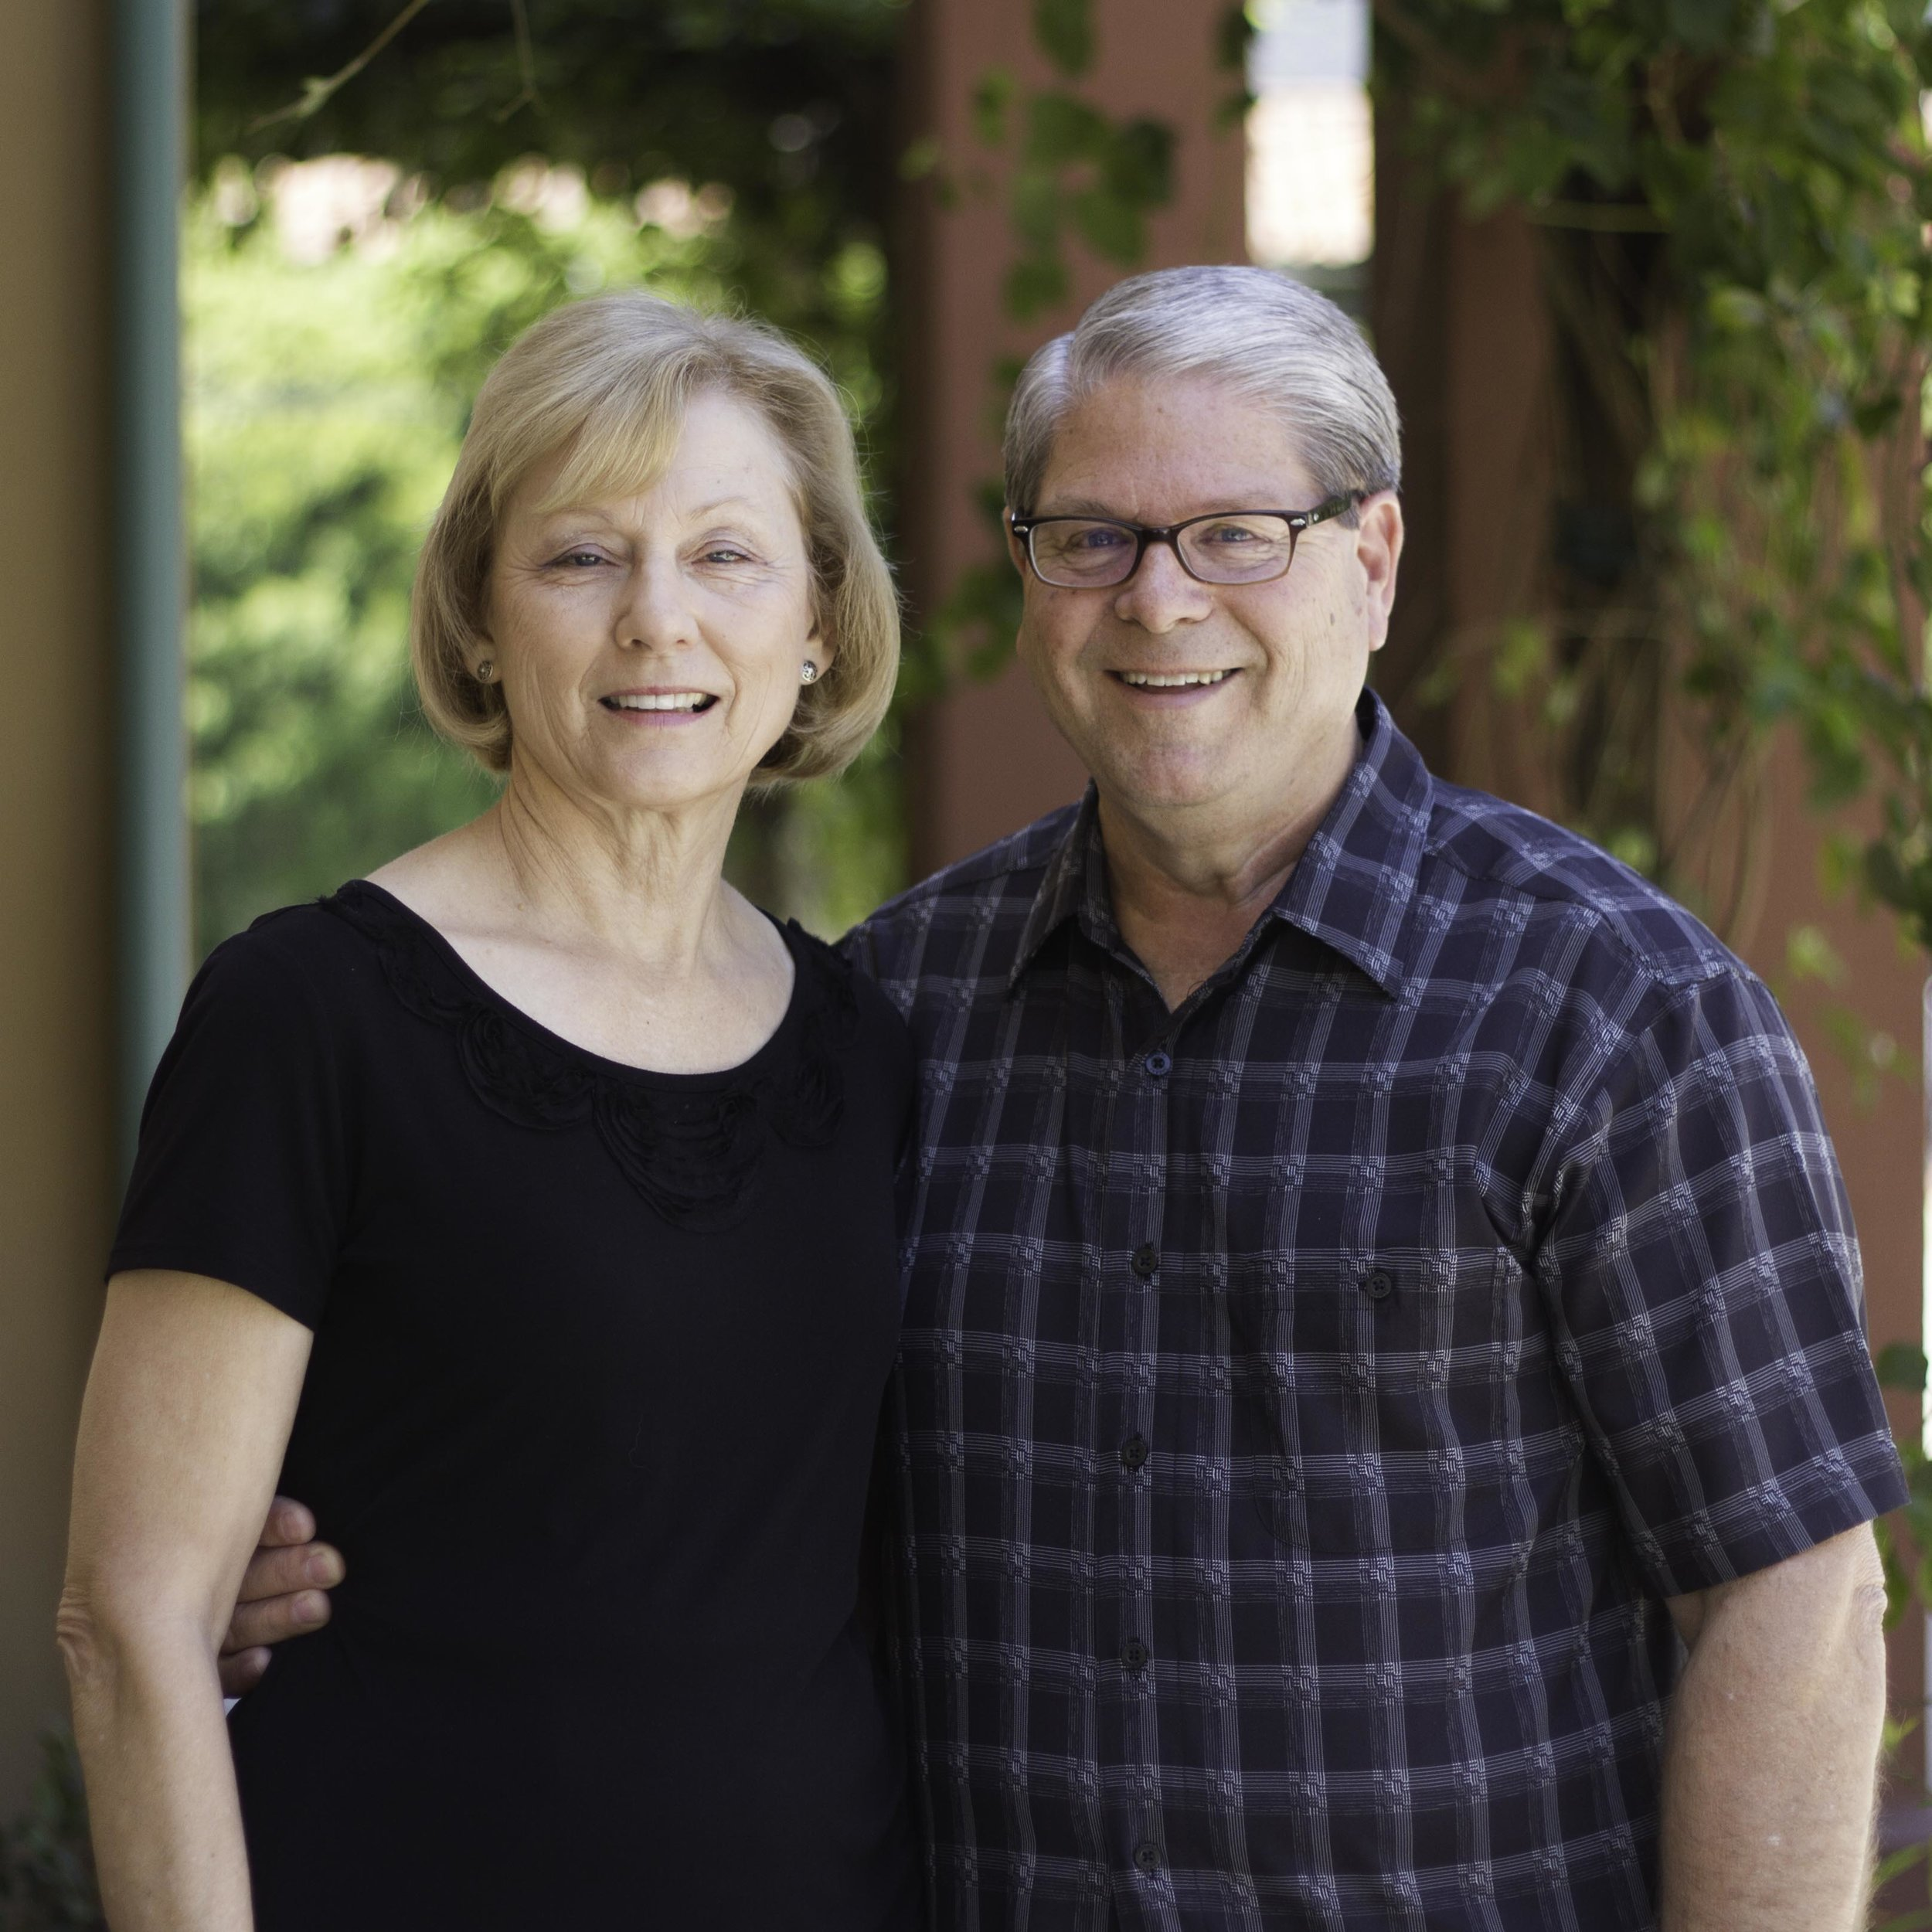 ". Randy & Charlotte Foster   As Lead Pastor, Randy teaches and leads the congregation each Sunday morning. He has been part of church leadership for years, and is still doing his best to love the Lord with all his heart by serving those around him. He has also been known to have a ""second office"" at the local Starbucks where he not only gets caffeine, but also ministers to the community. His usual large tea from Starbucks may keep him awake, though if you were to ask him, he'd tell you his energy is largely due to the support and love of his wife, Charlotte."